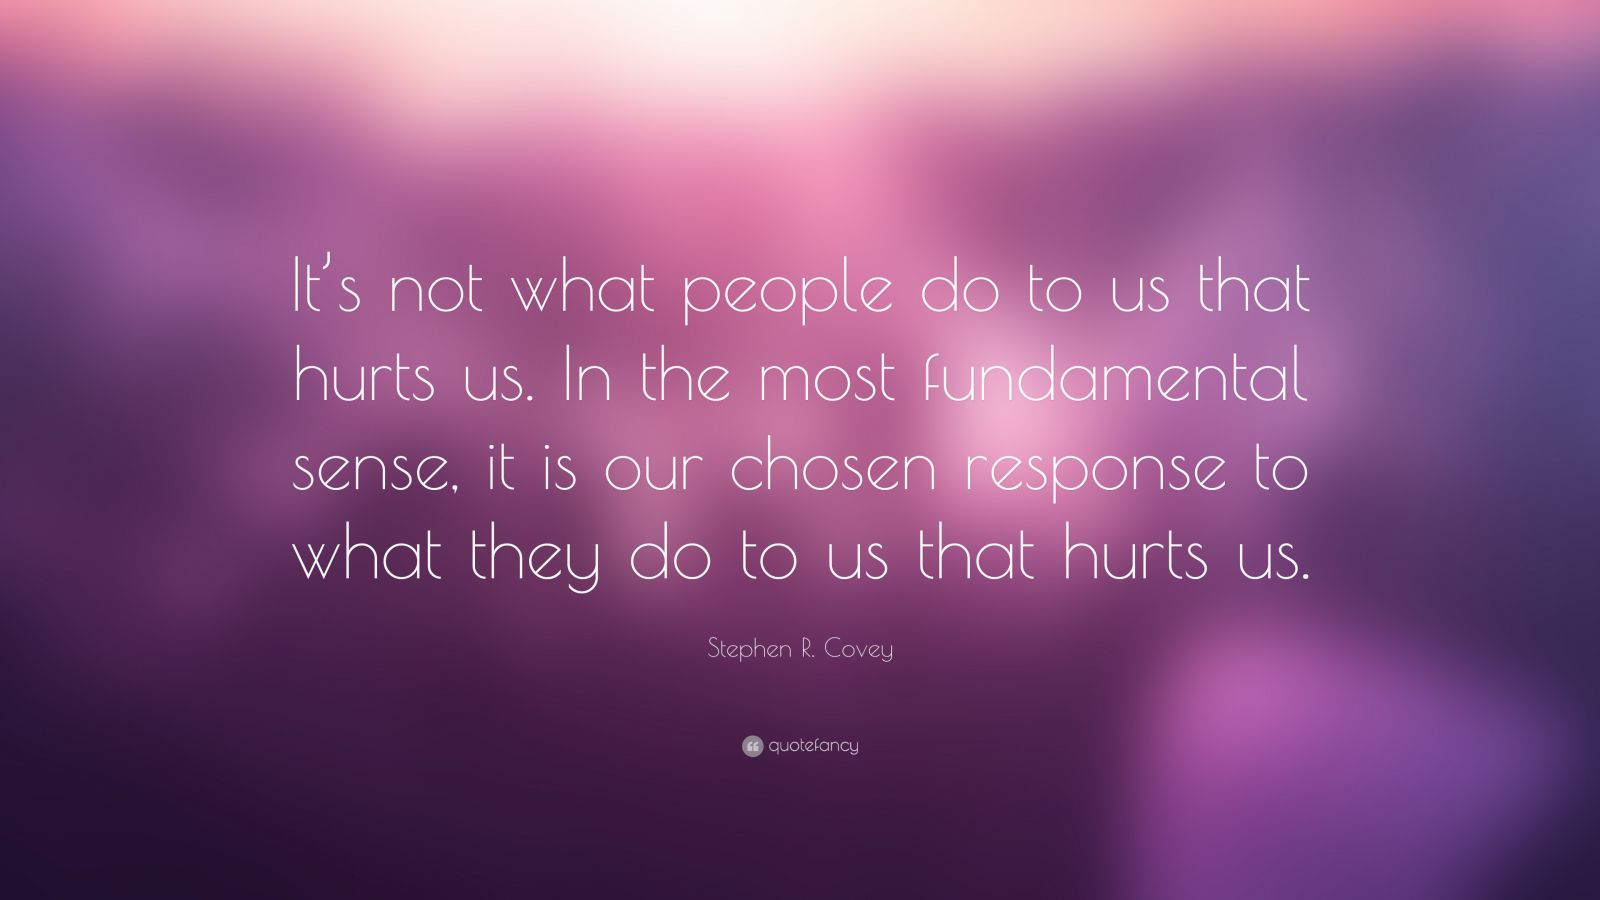 """Stephen R. Covey Quote: """"It's not what people do to us that hurts us. In the most fundamental sense, it is our chosen response to what they do to us that hurts us."""""""